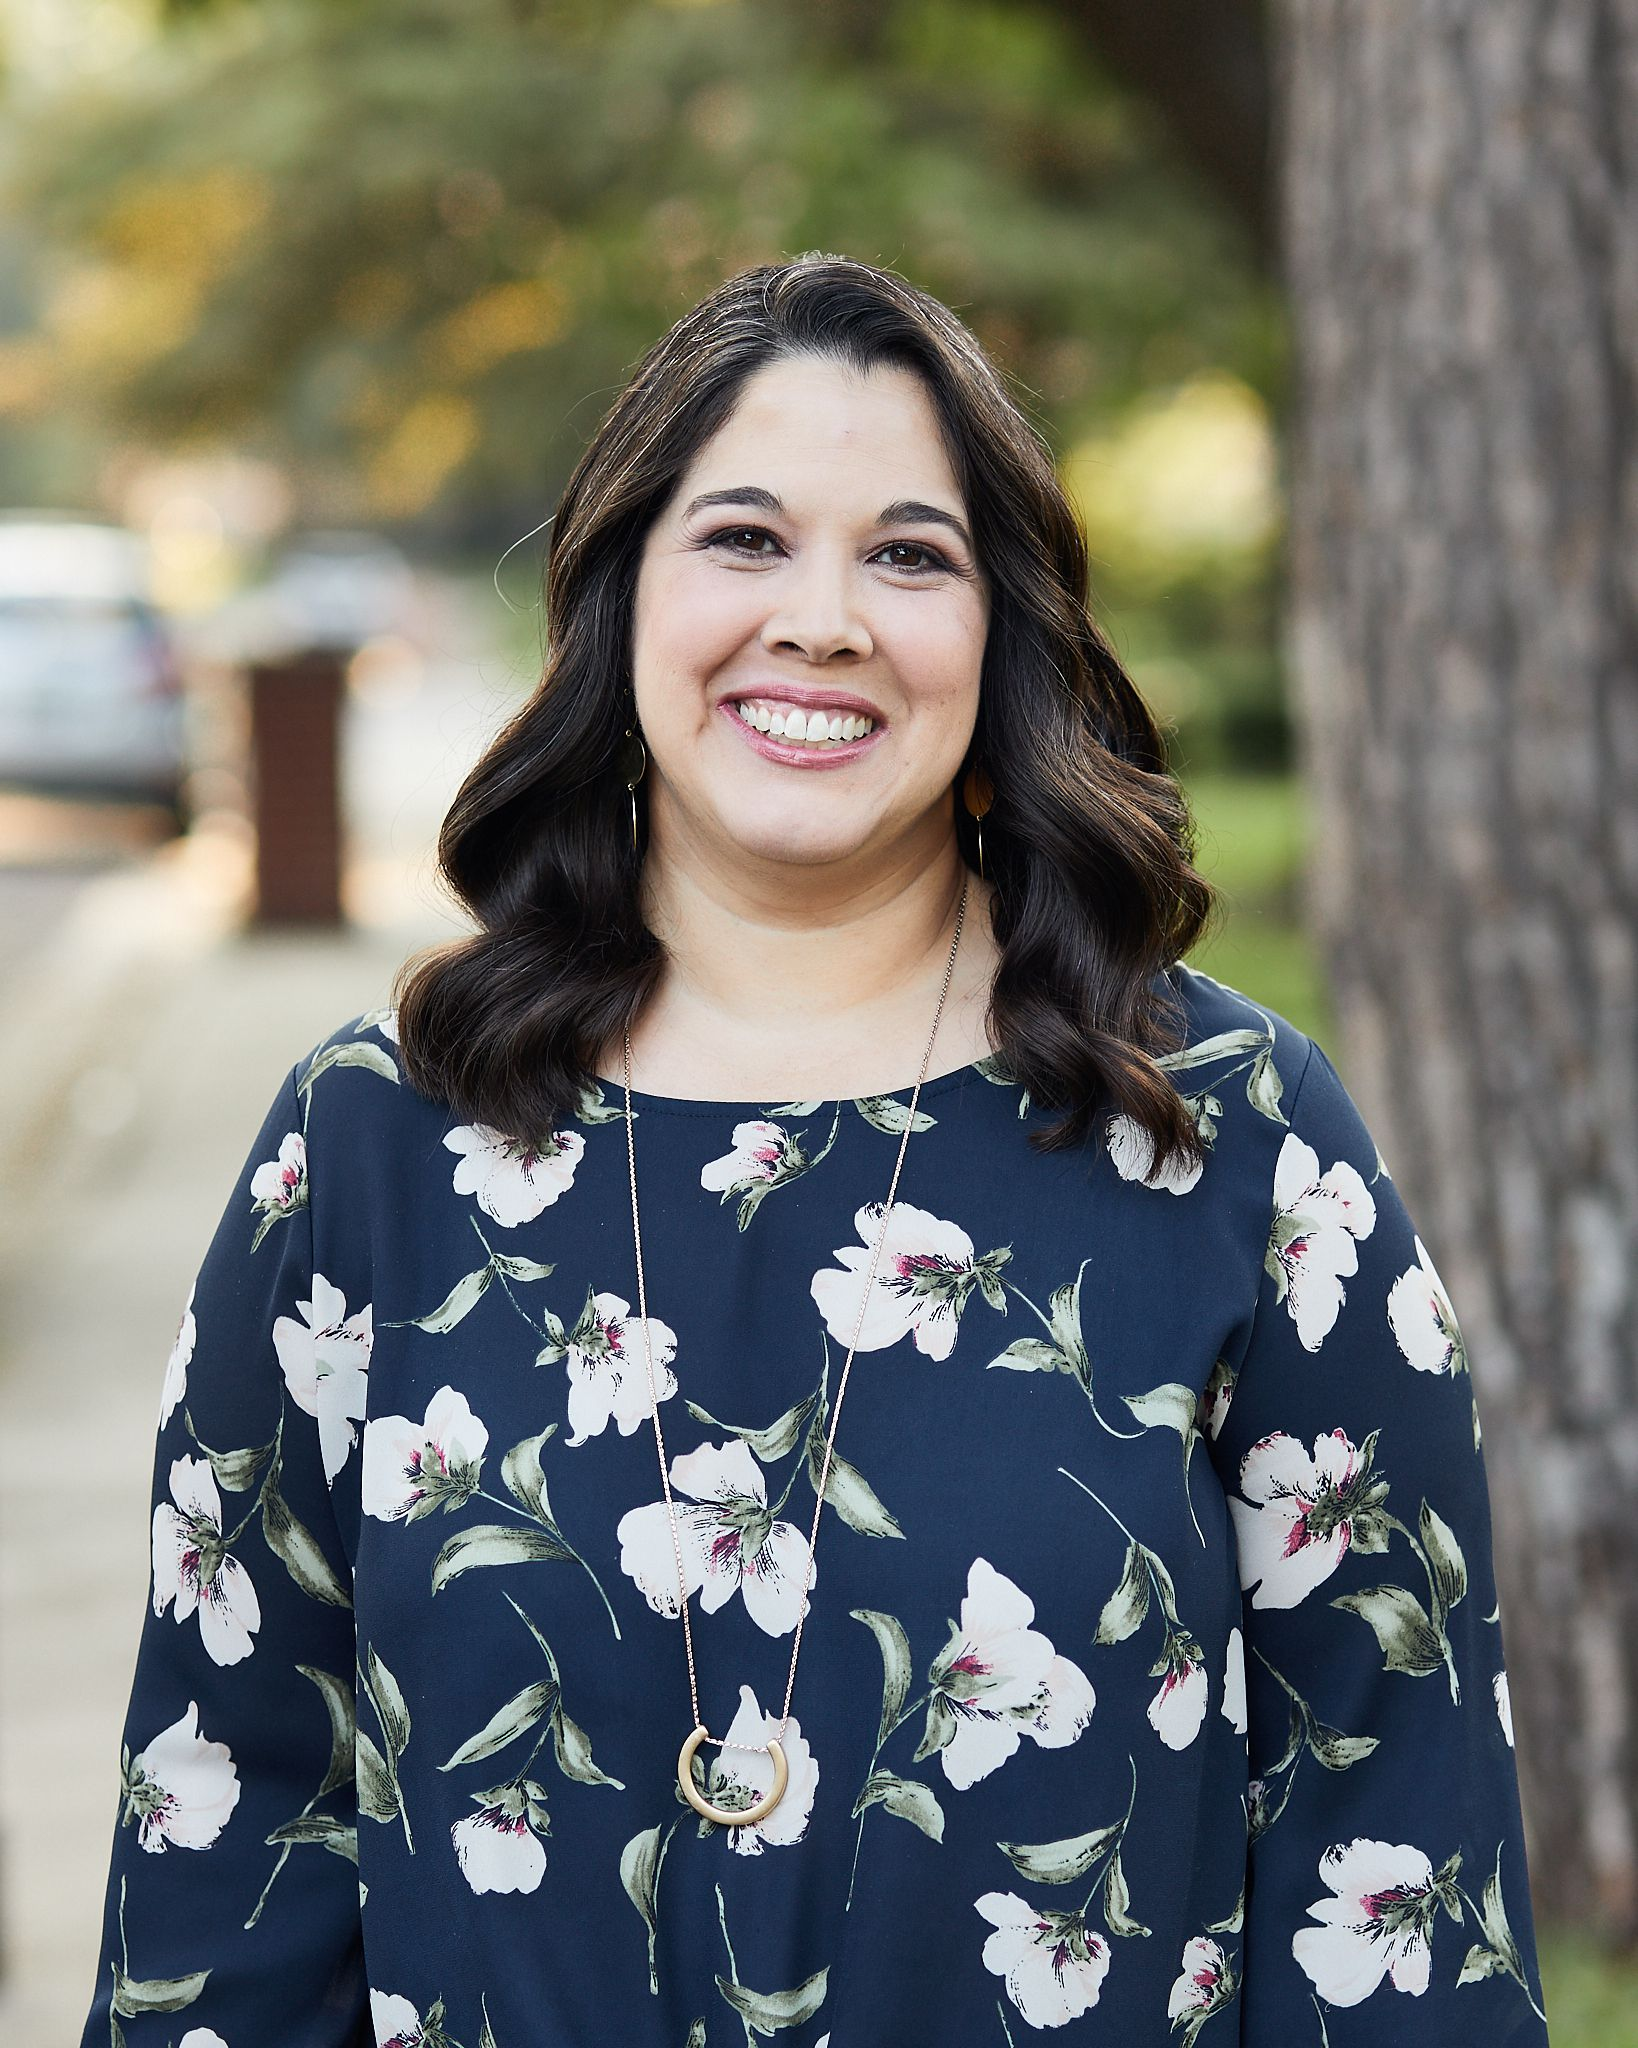 Aimee Garza Lopez is running in the Democratic primary for Texas House District 66.